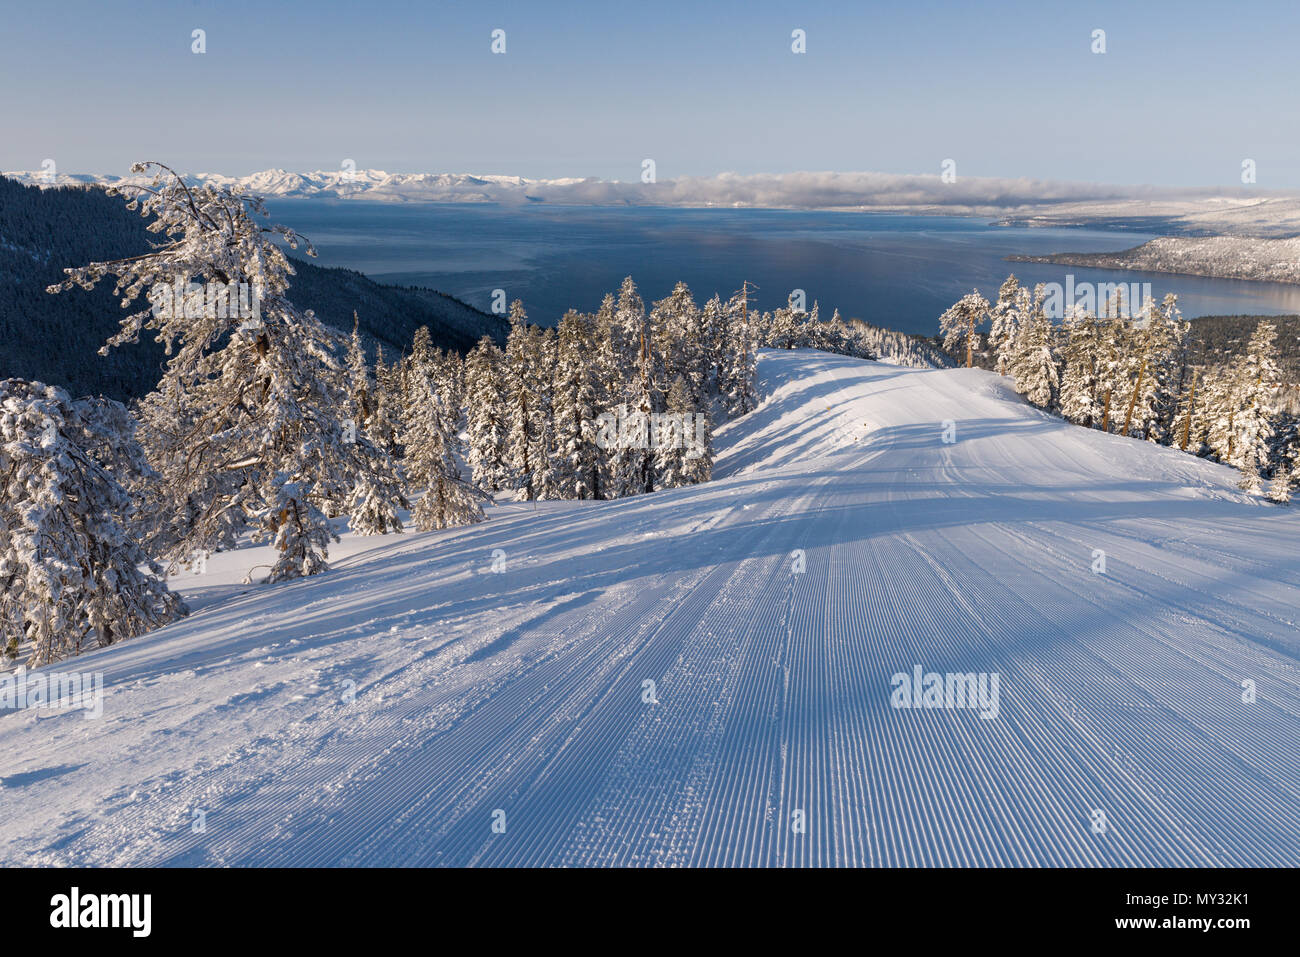 Lake Tahoe as viewed from Diamond Peak ski resort in Incline Village after a snow storm. - Stock Image